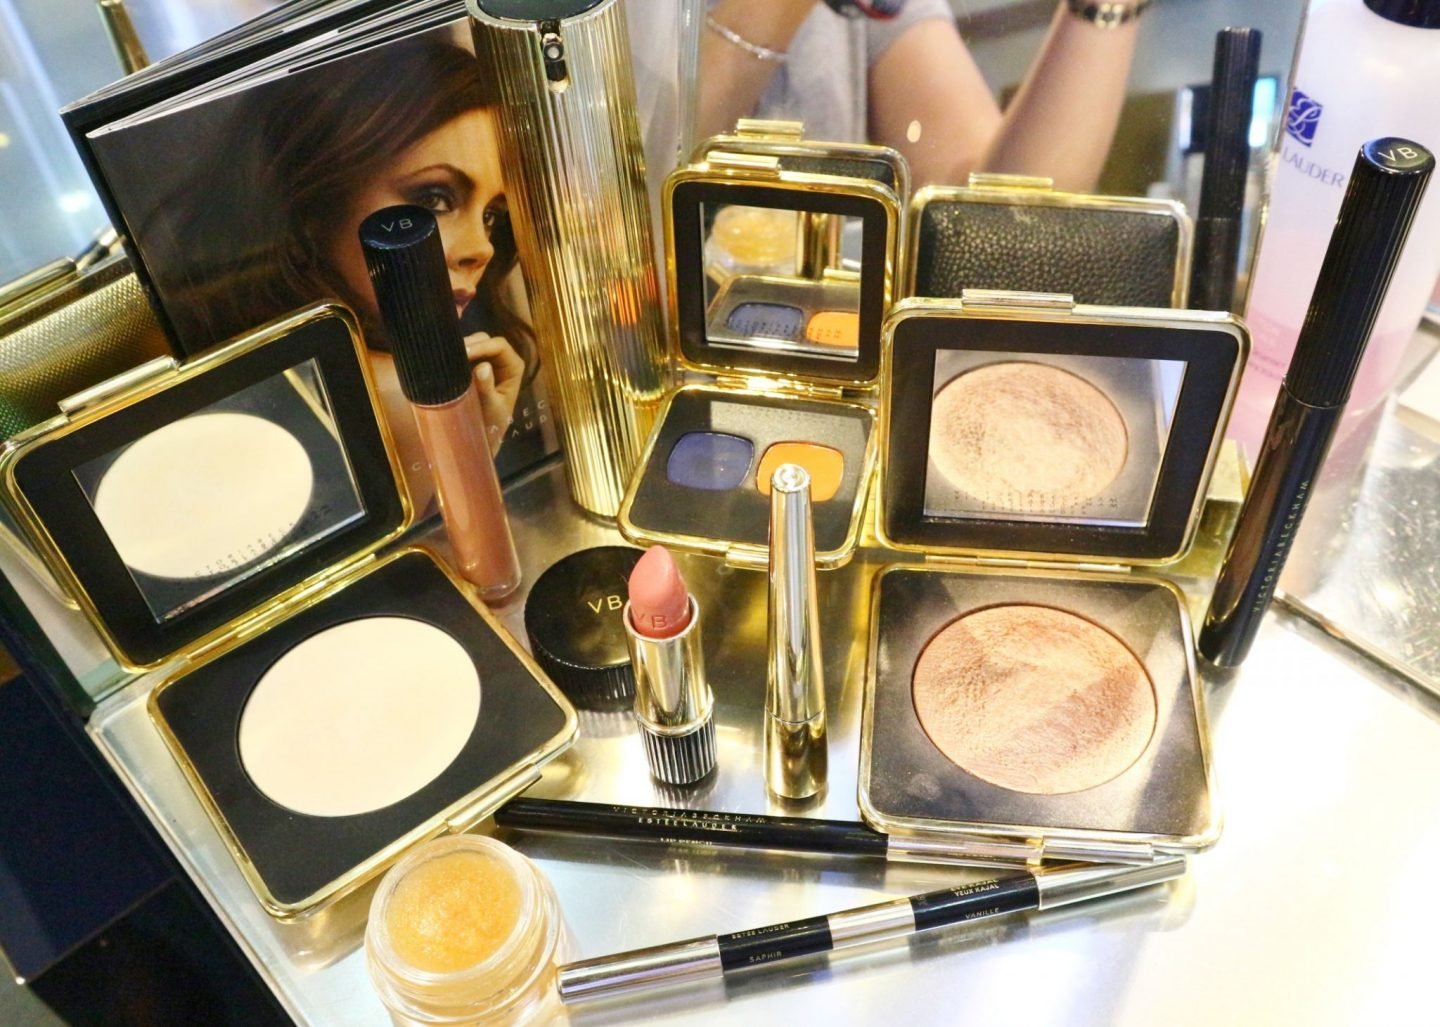 Victoria Beckham for Estee Lauder – The second collection